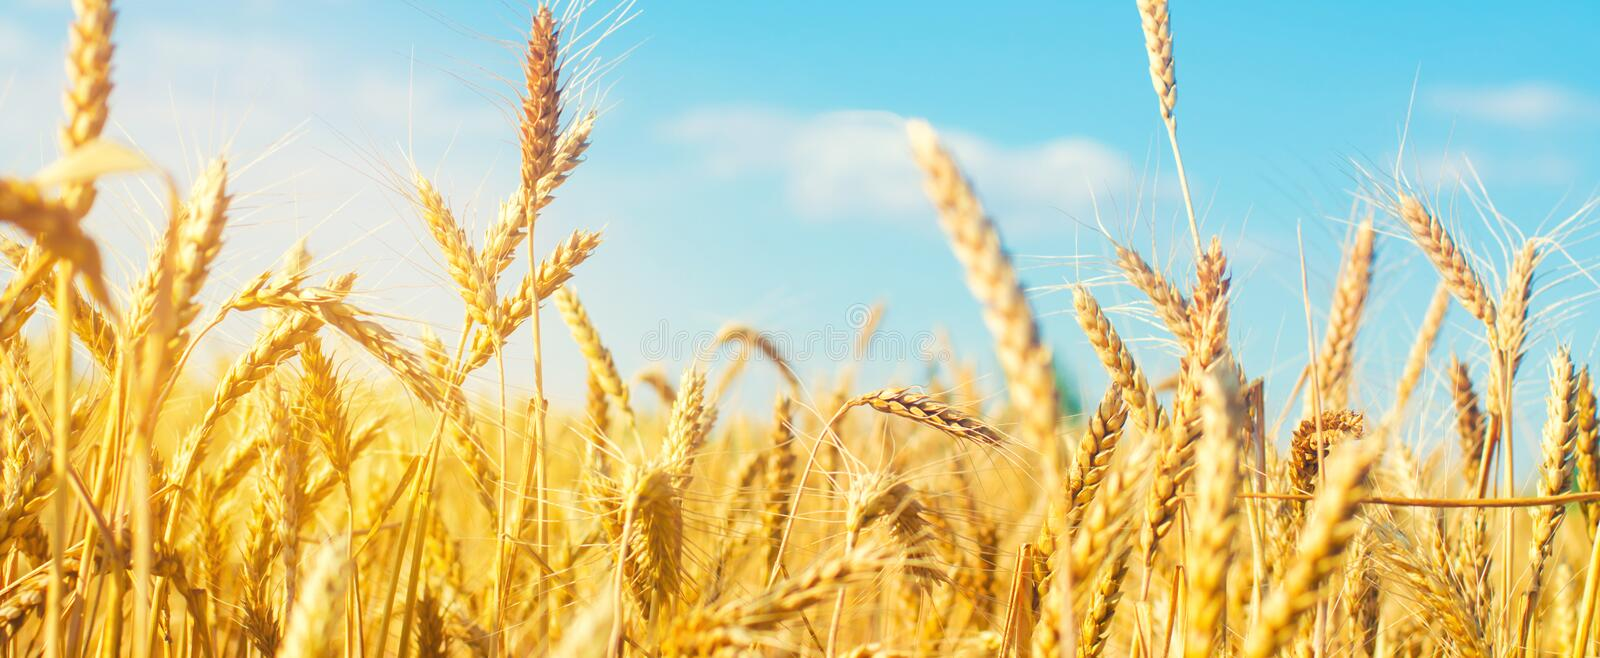 Beautiful view of the wheat field and blue sky in the countryside. Cultivation of crops. Agriculture and farming. Agro industry. royalty free stock image